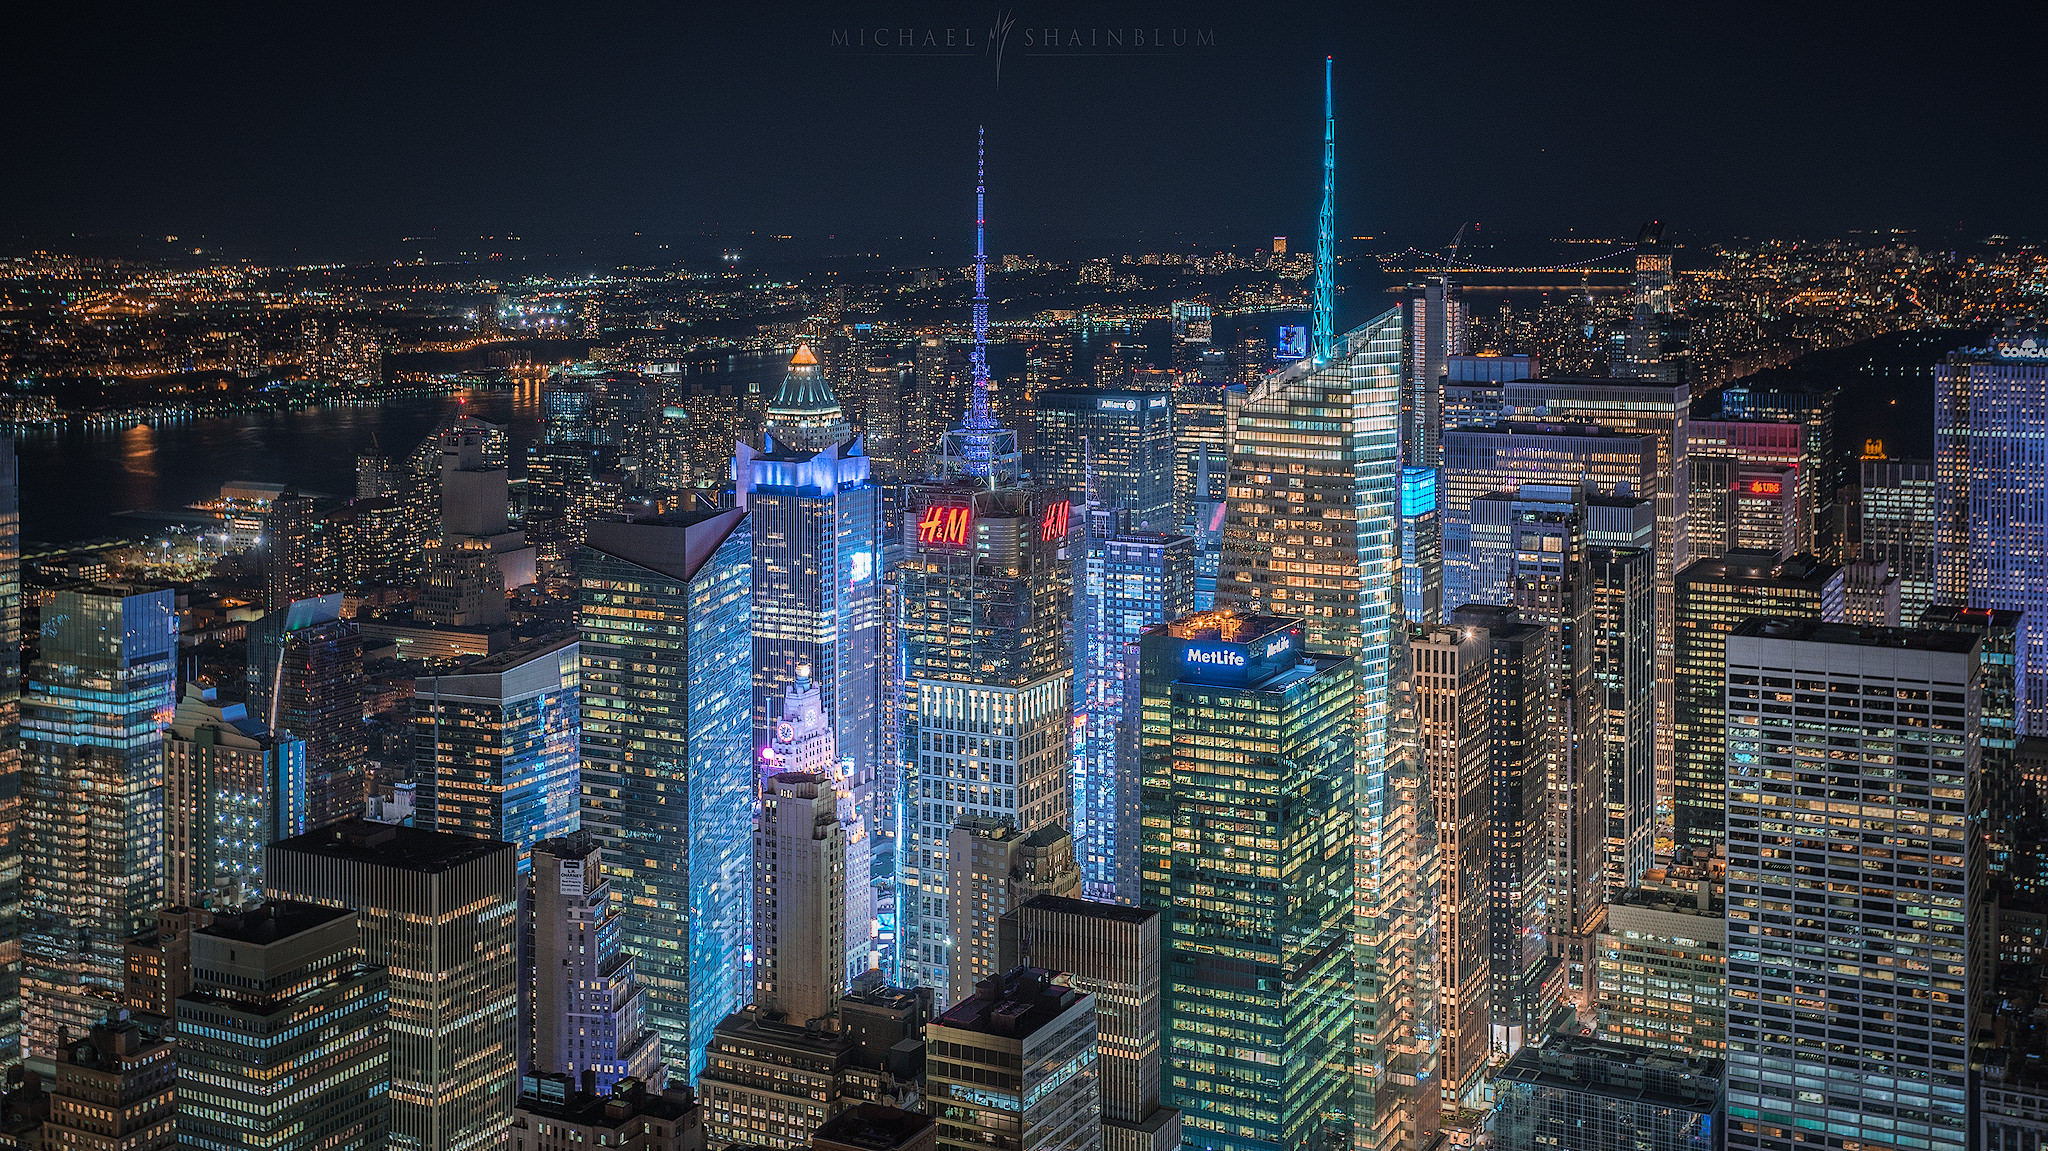 New York City Cityscape Times Square Night Photography Michael Shainblum Photography